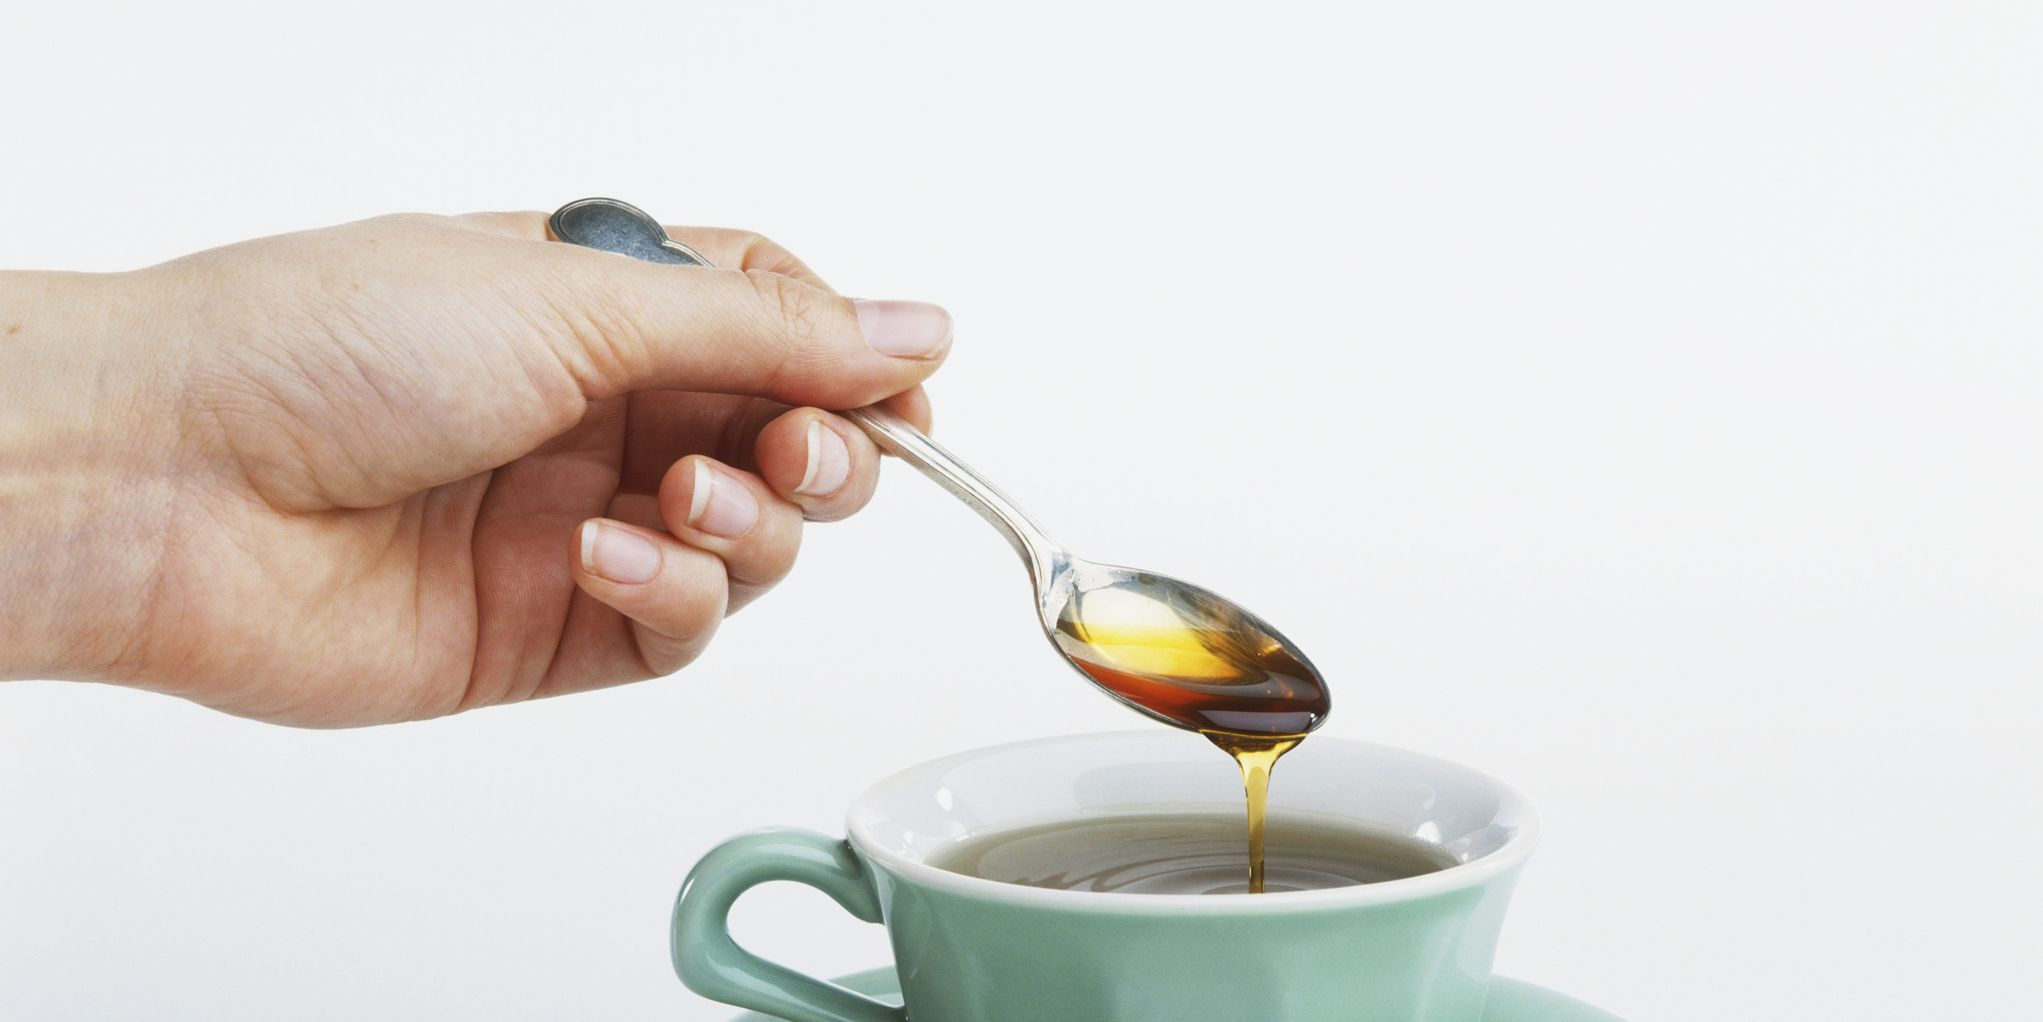 Use honey to treat your cough, say new guidelines